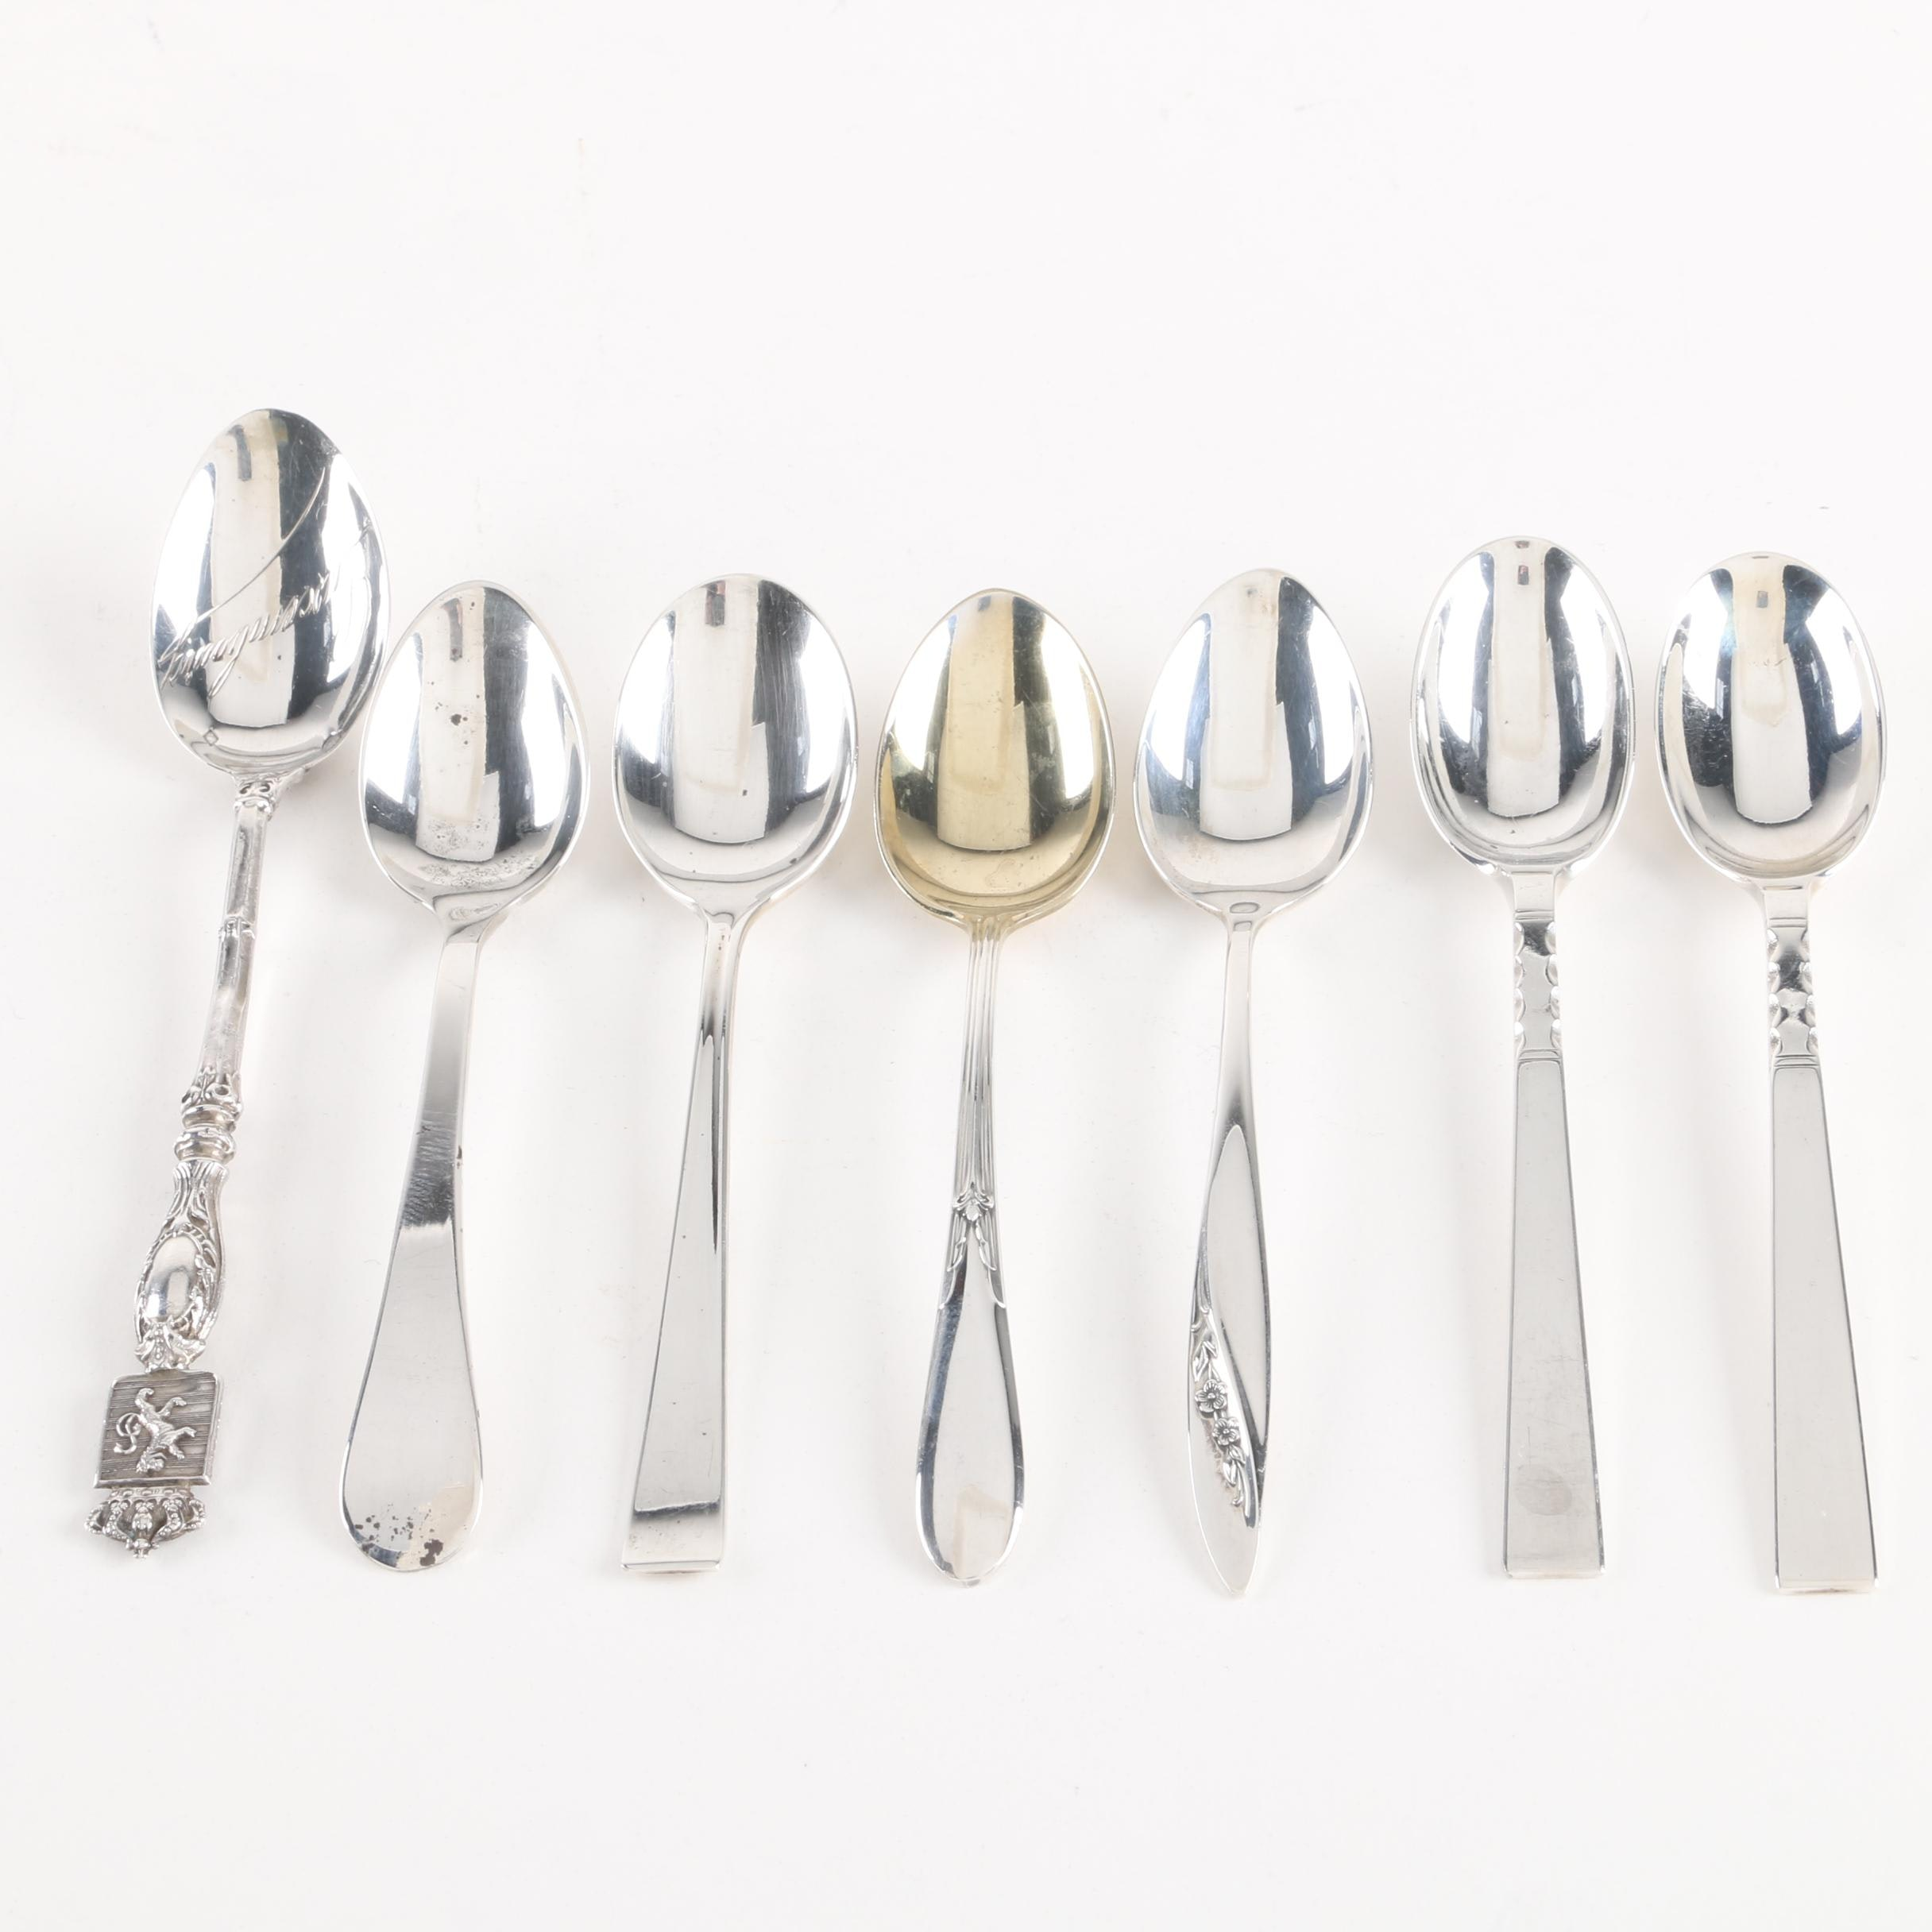 Black, Starr & Gorham Sterling Demitasse Spoons with Other Sterling Spoons